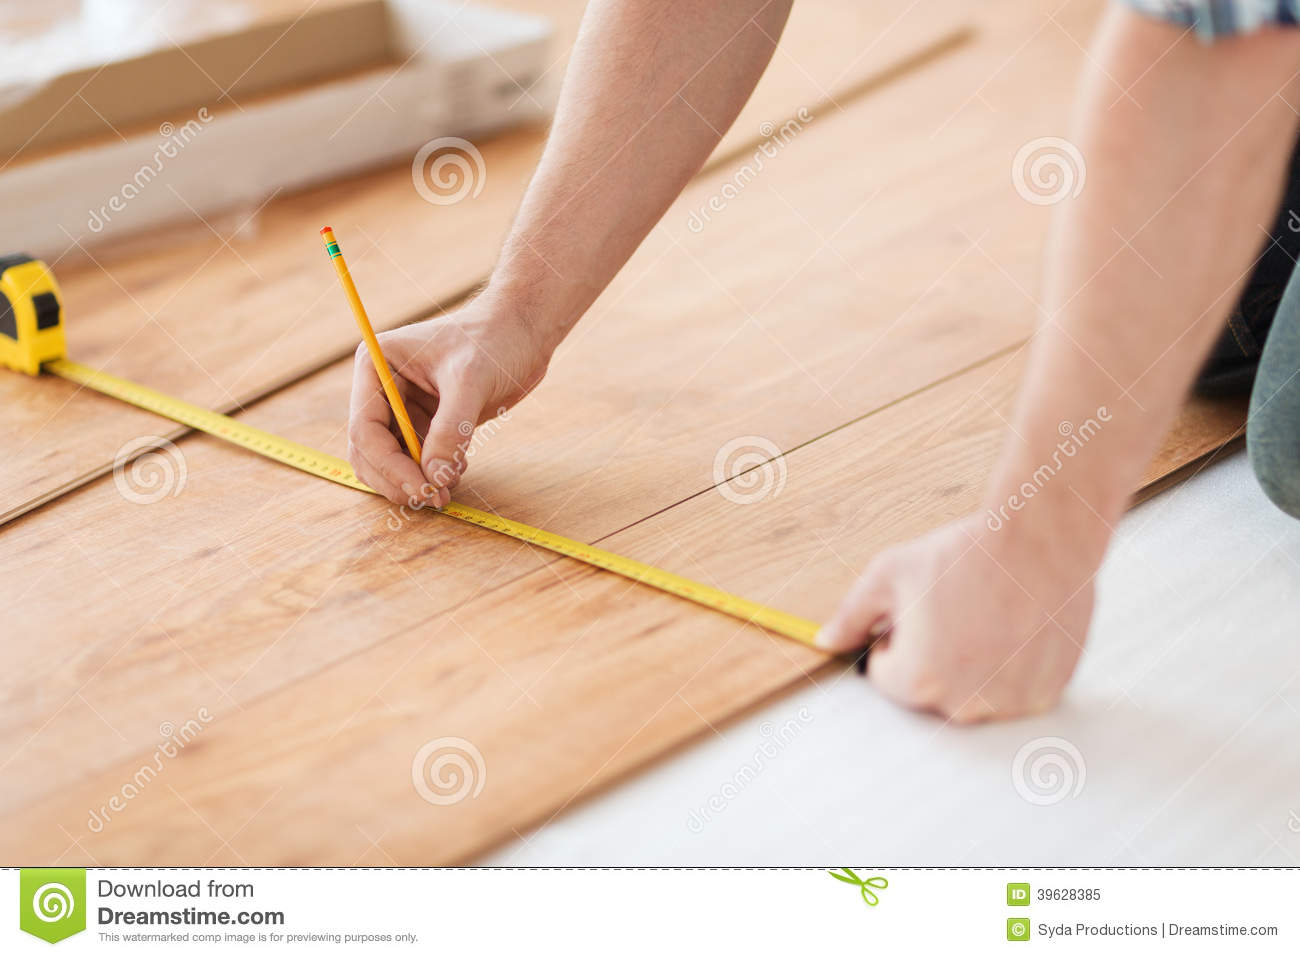 Close Up Of Male Hands Measuring Wood Flooring Stock Image Closeup